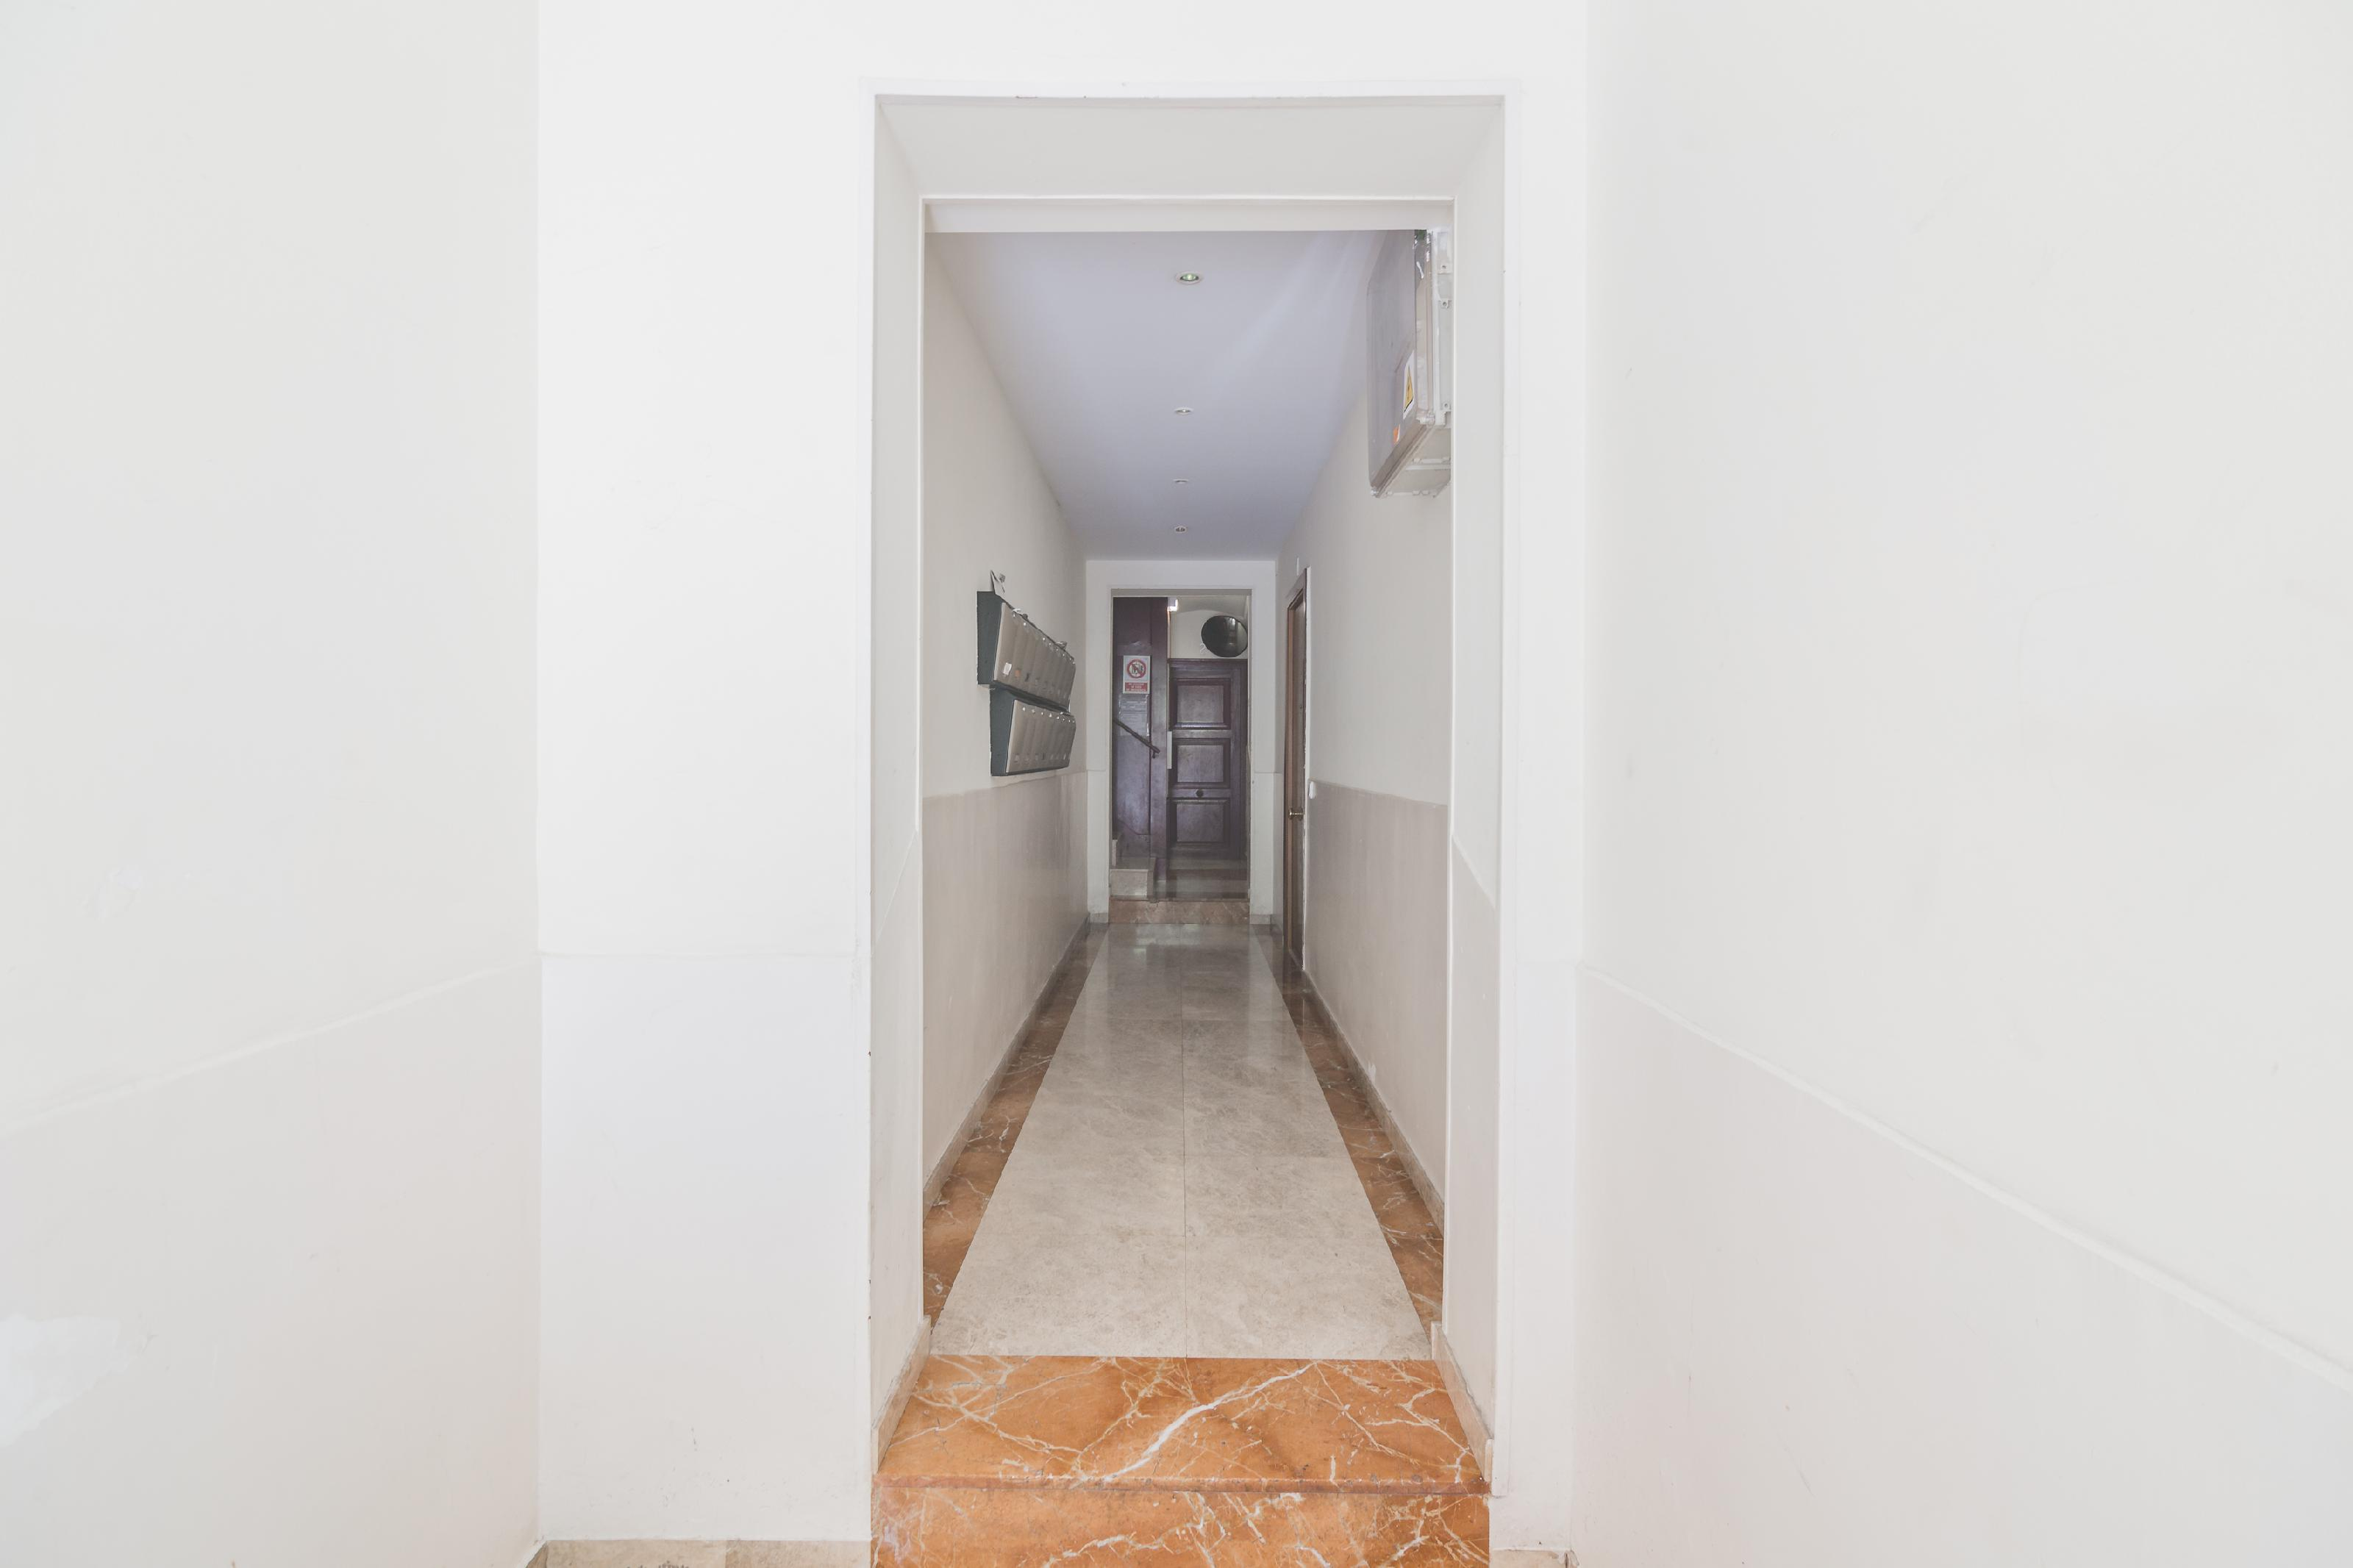 240301 Flat for sale in Gràcia, Camp Grassot and Gràcia Nova 23